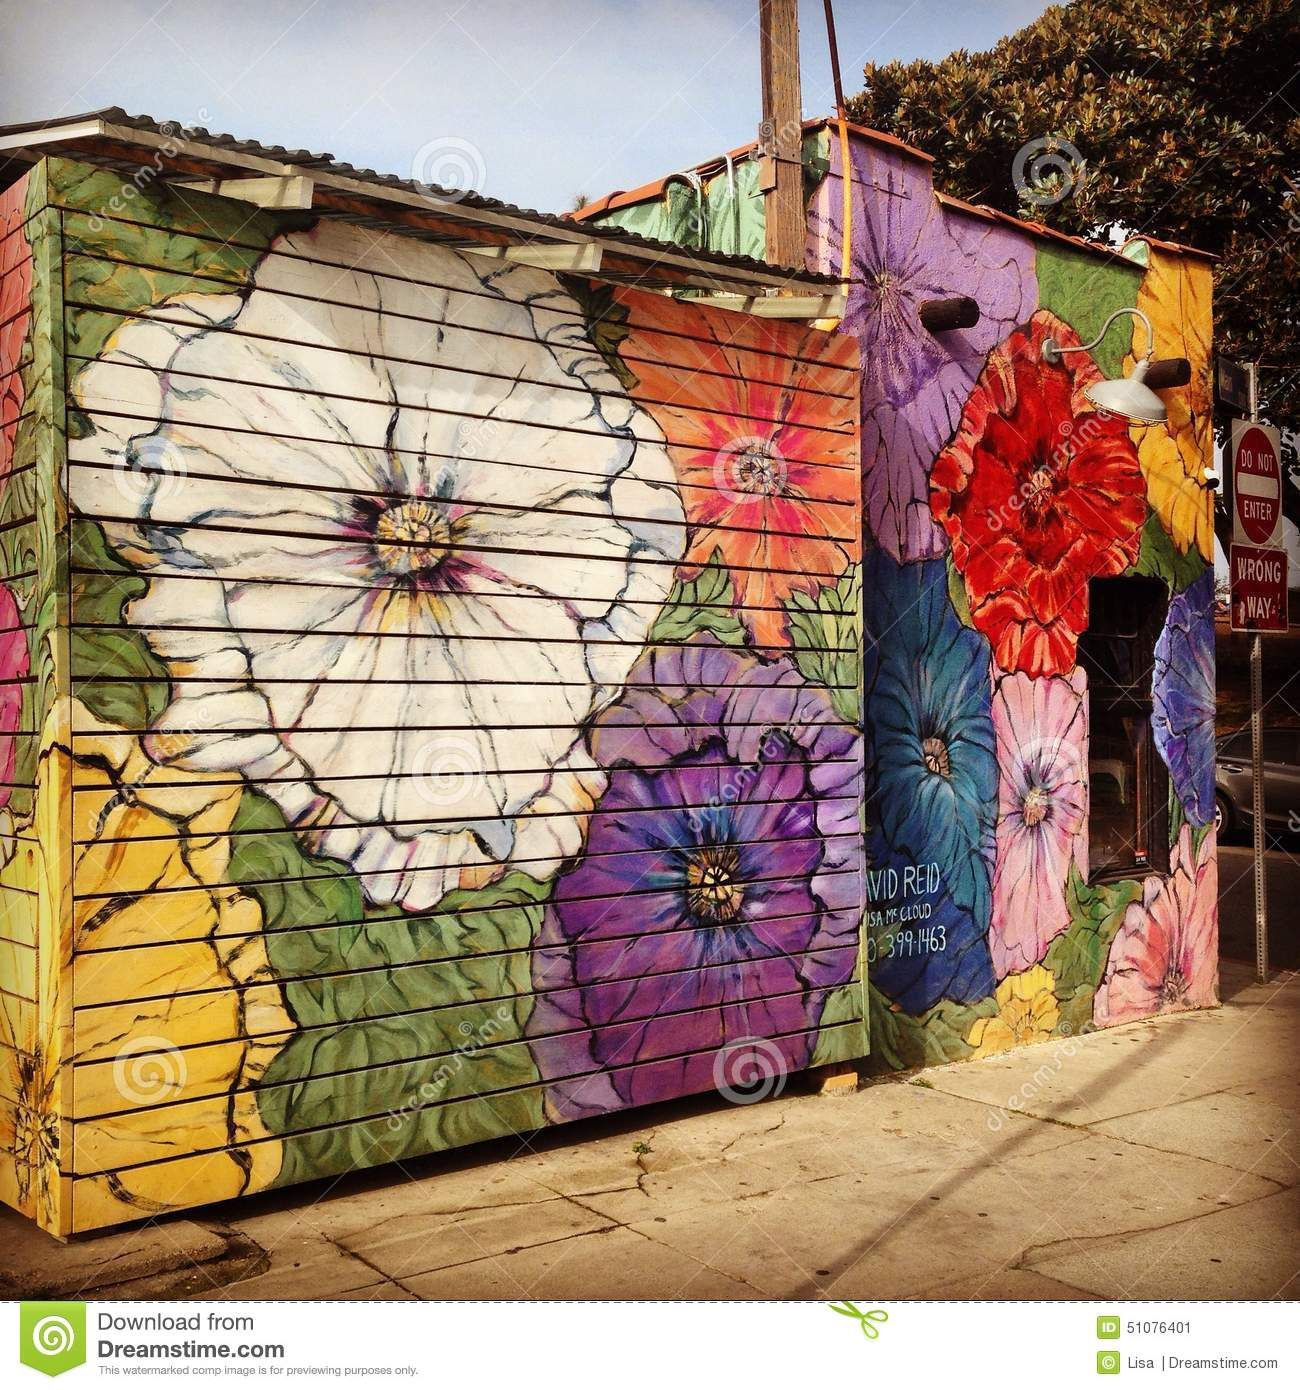 Park Art My WordPress Blog_How To Start A Painting Business In Florida